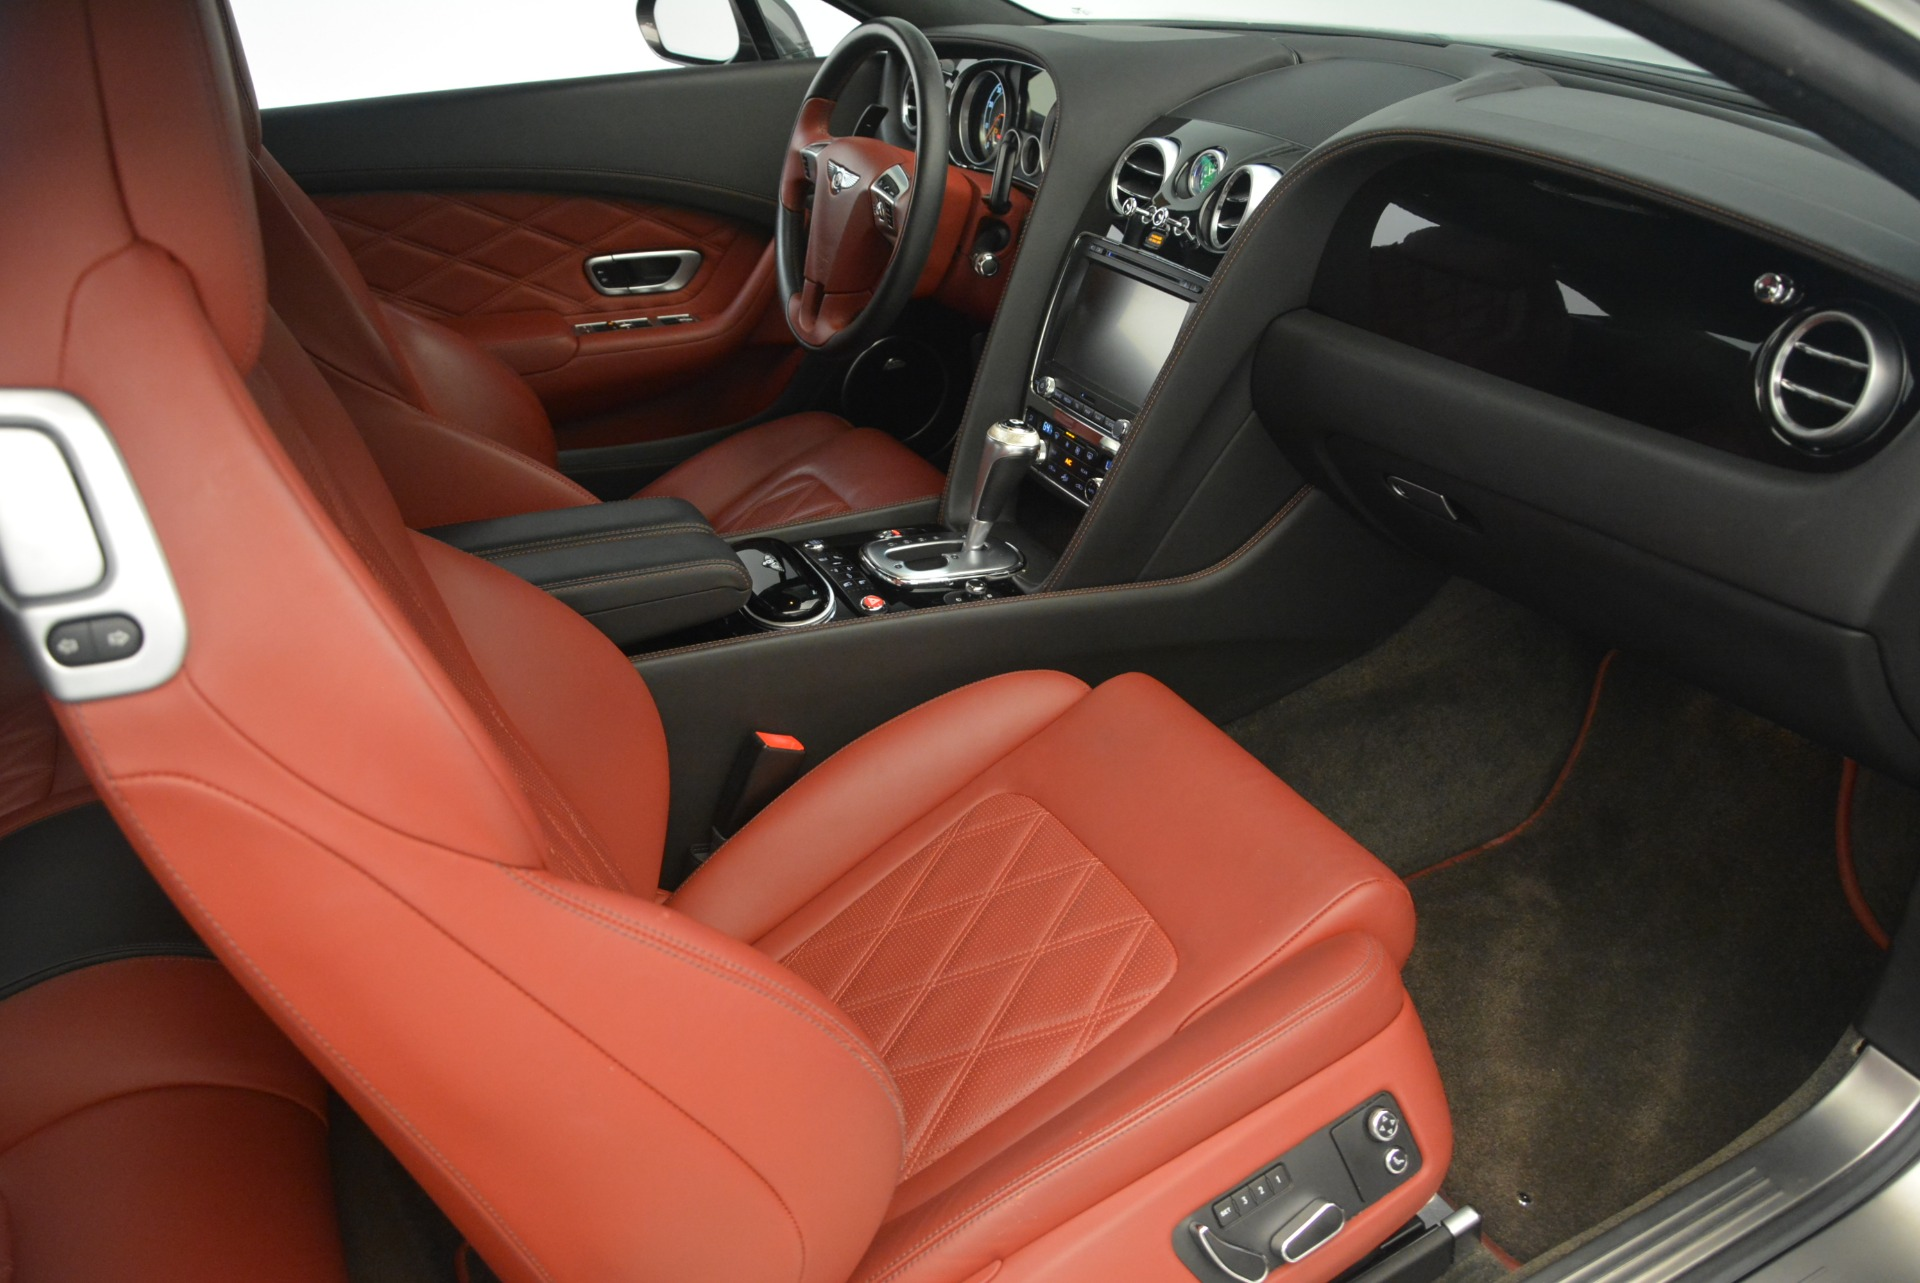 Used 2015 Bentley Continental GT V8 S For Sale In Greenwich, CT. Alfa Romeo of Greenwich, 7360 2207_p23